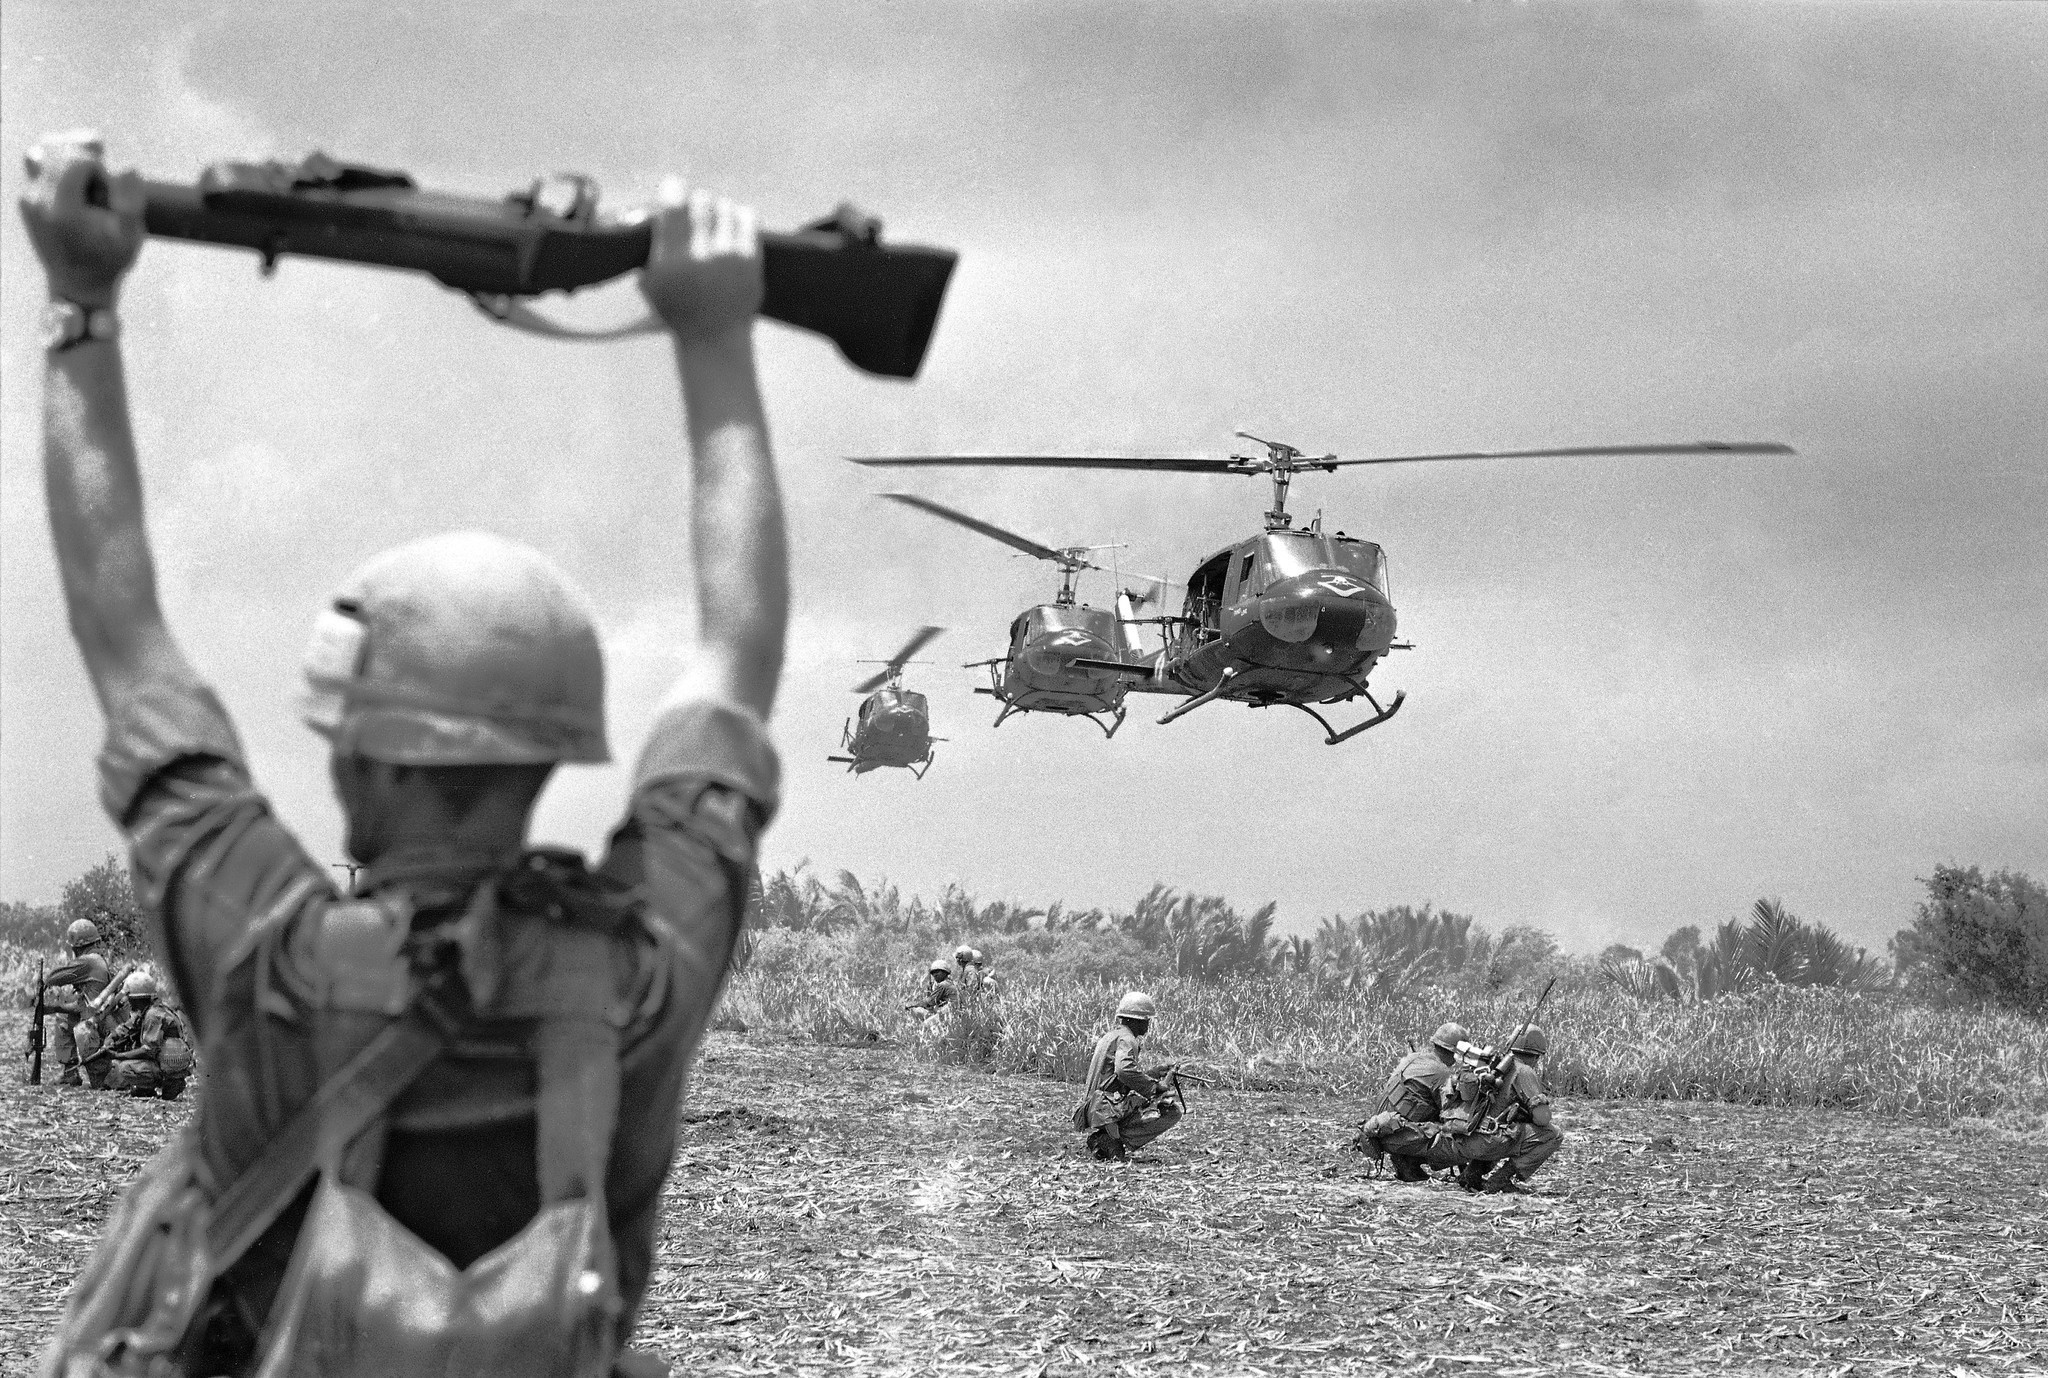 vietnam war thesis statement This honors thesis is brought to you for free and open access by digitalcommons@umaine it has been hadyniak, kyle, how journalism influenced american public opinion during the vietnam war: a case study of the battle of ap statement today defending the courage of the vietnamese soldier.